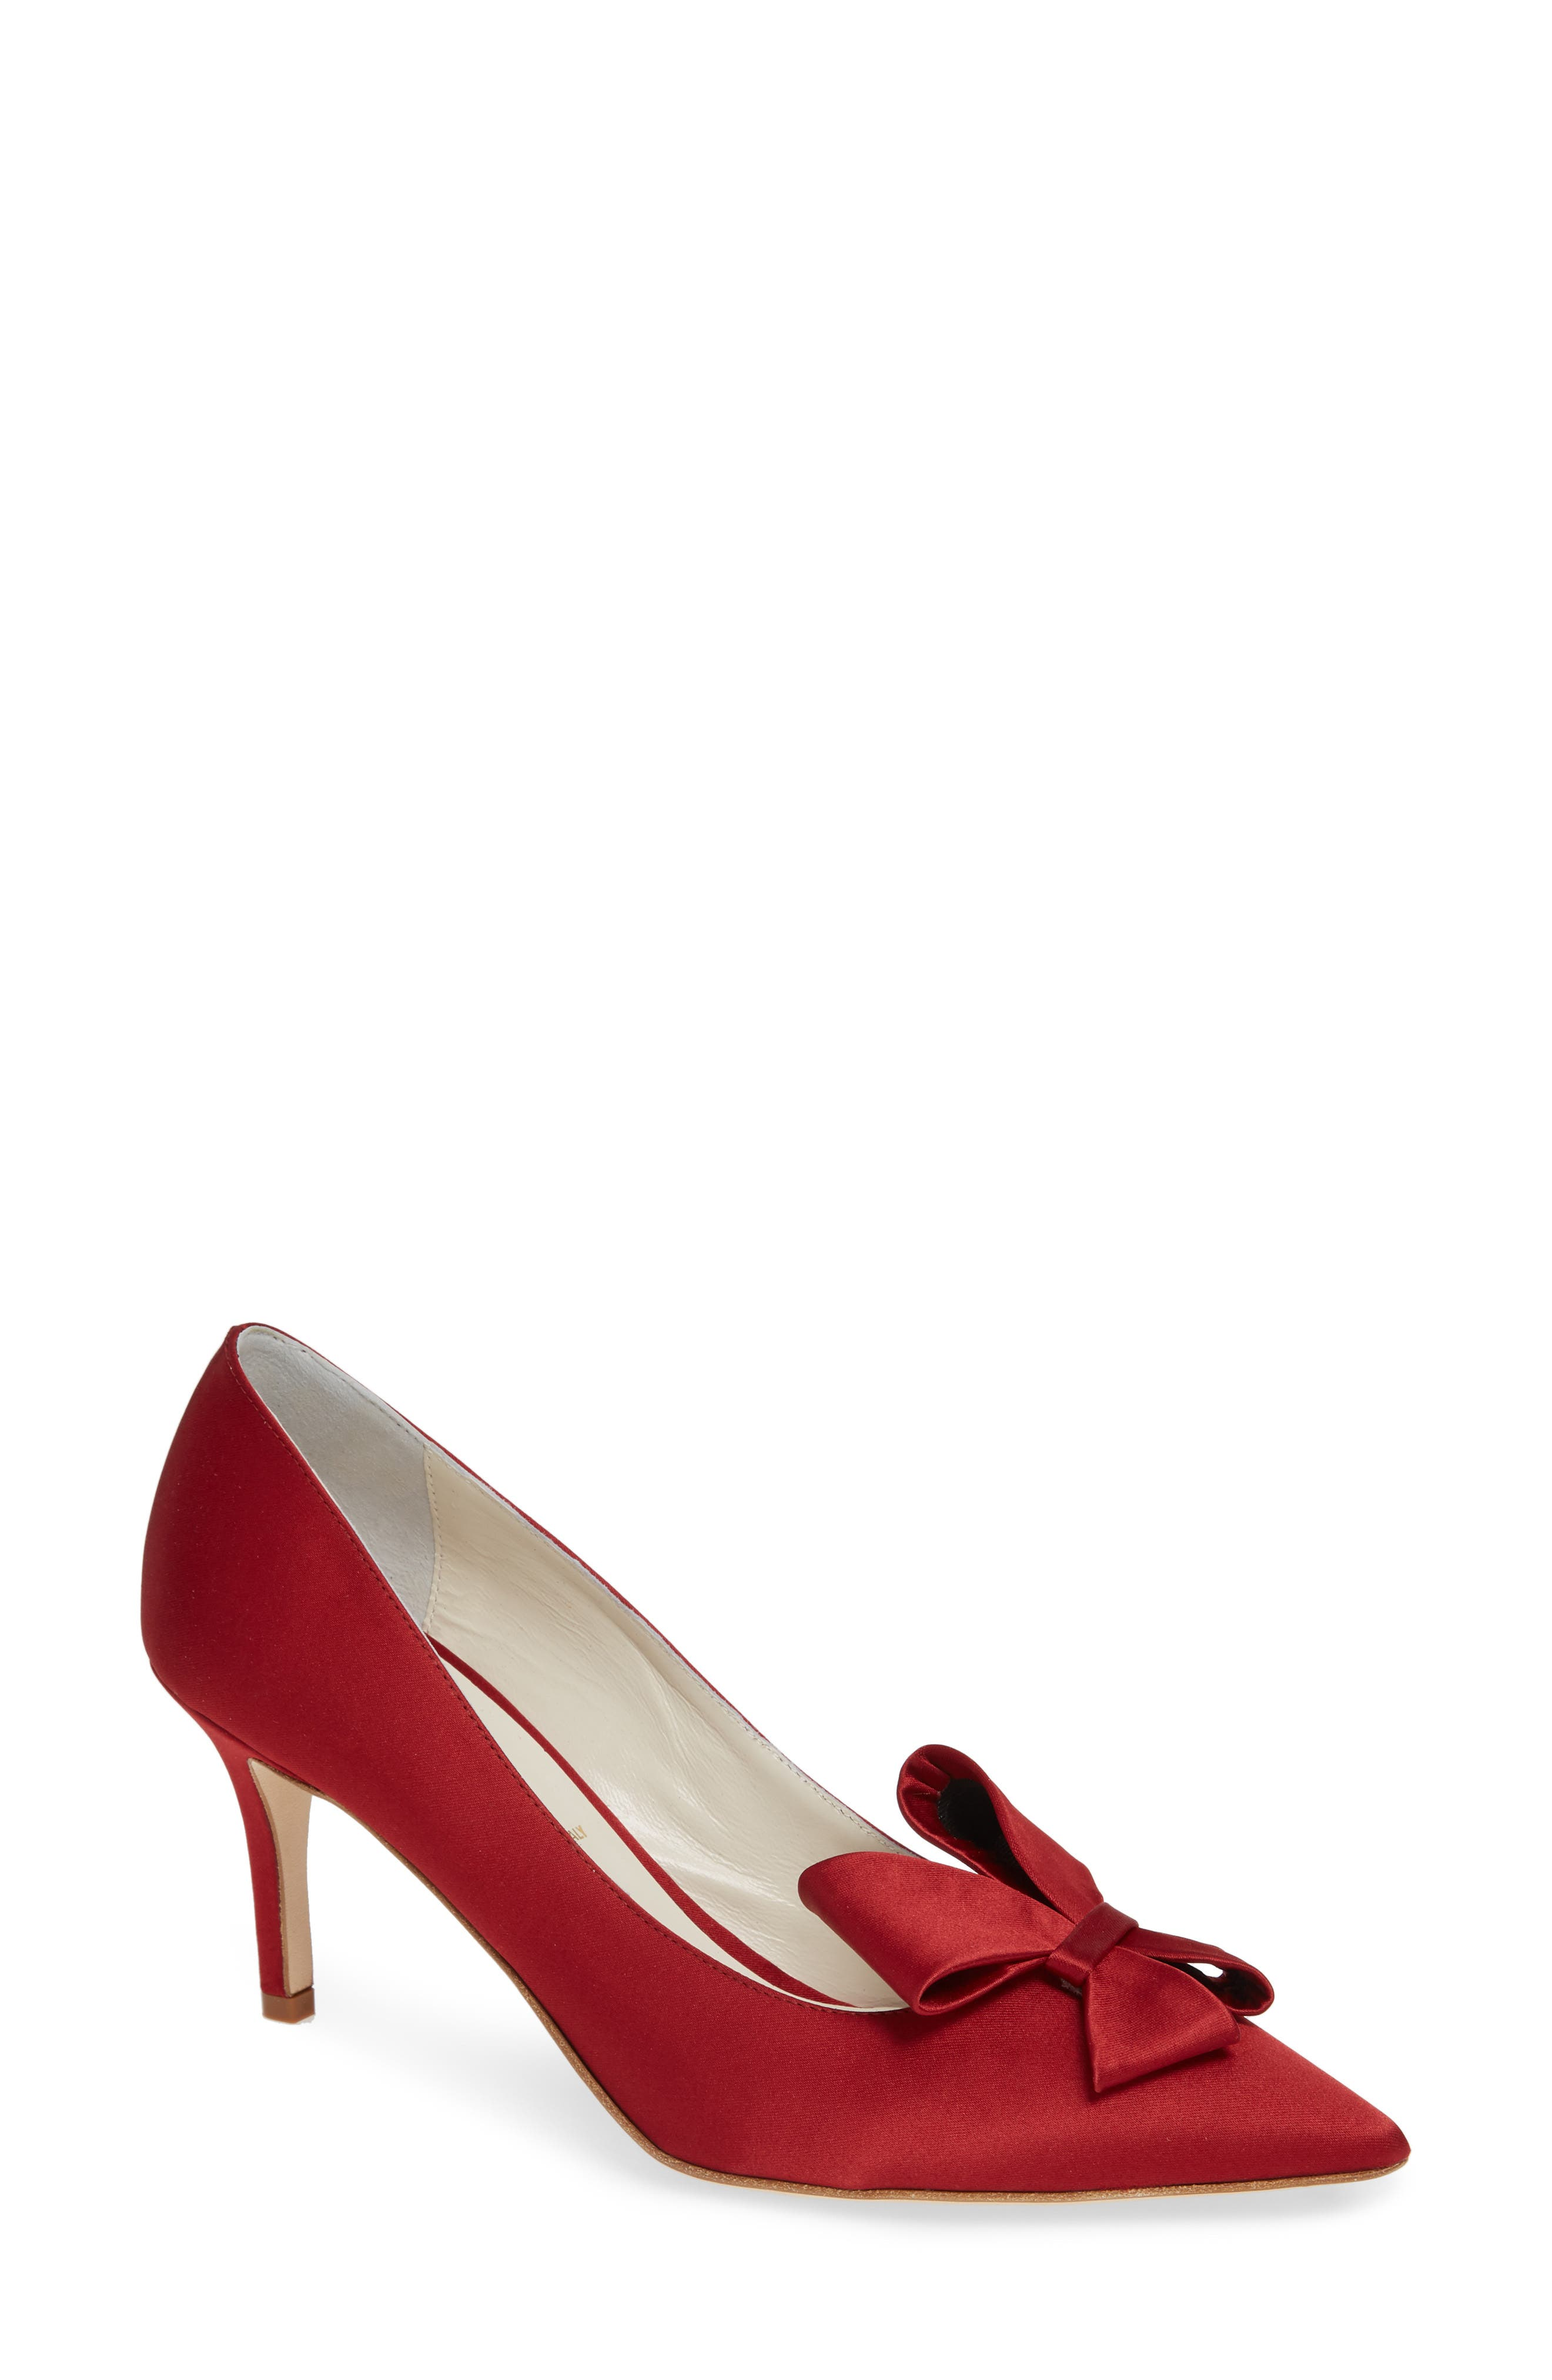 SOMETHING BLEU Caitlin Bow Pointy Toe Pump, Main, color, 600